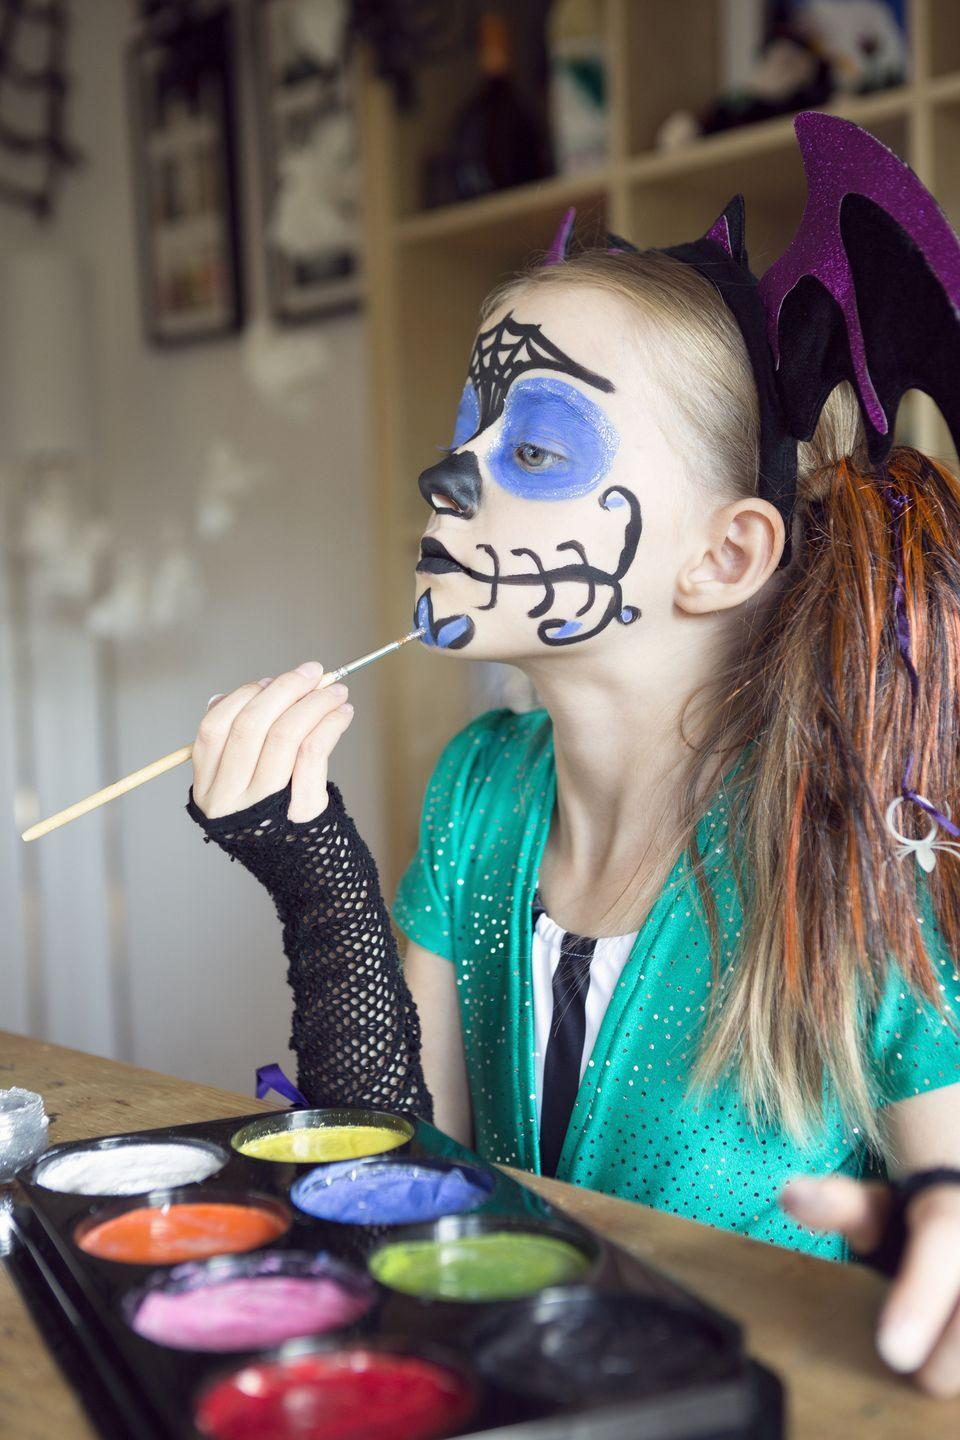 """<p>Face painting is always the most fun part of a Halloween fair, but you can easily do it at home with some safe to use paint and creativity,</p><p><a class=""""link rapid-noclick-resp"""" href=""""https://www.amazon.com/Non-Grease-Brushes-Stencils-Water-Based-Professional/dp/B07MM5916Z/?tag=syn-yahoo-20&ascsubtag=%5Bartid%7C1782.g.34114713%5Bsrc%7Cyahoo-us"""" rel=""""nofollow noopener"""" target=""""_blank"""" data-ylk=""""slk:SHOP FACE PAINTING KITS"""">SHOP FACE PAINTING KITS</a></p>"""